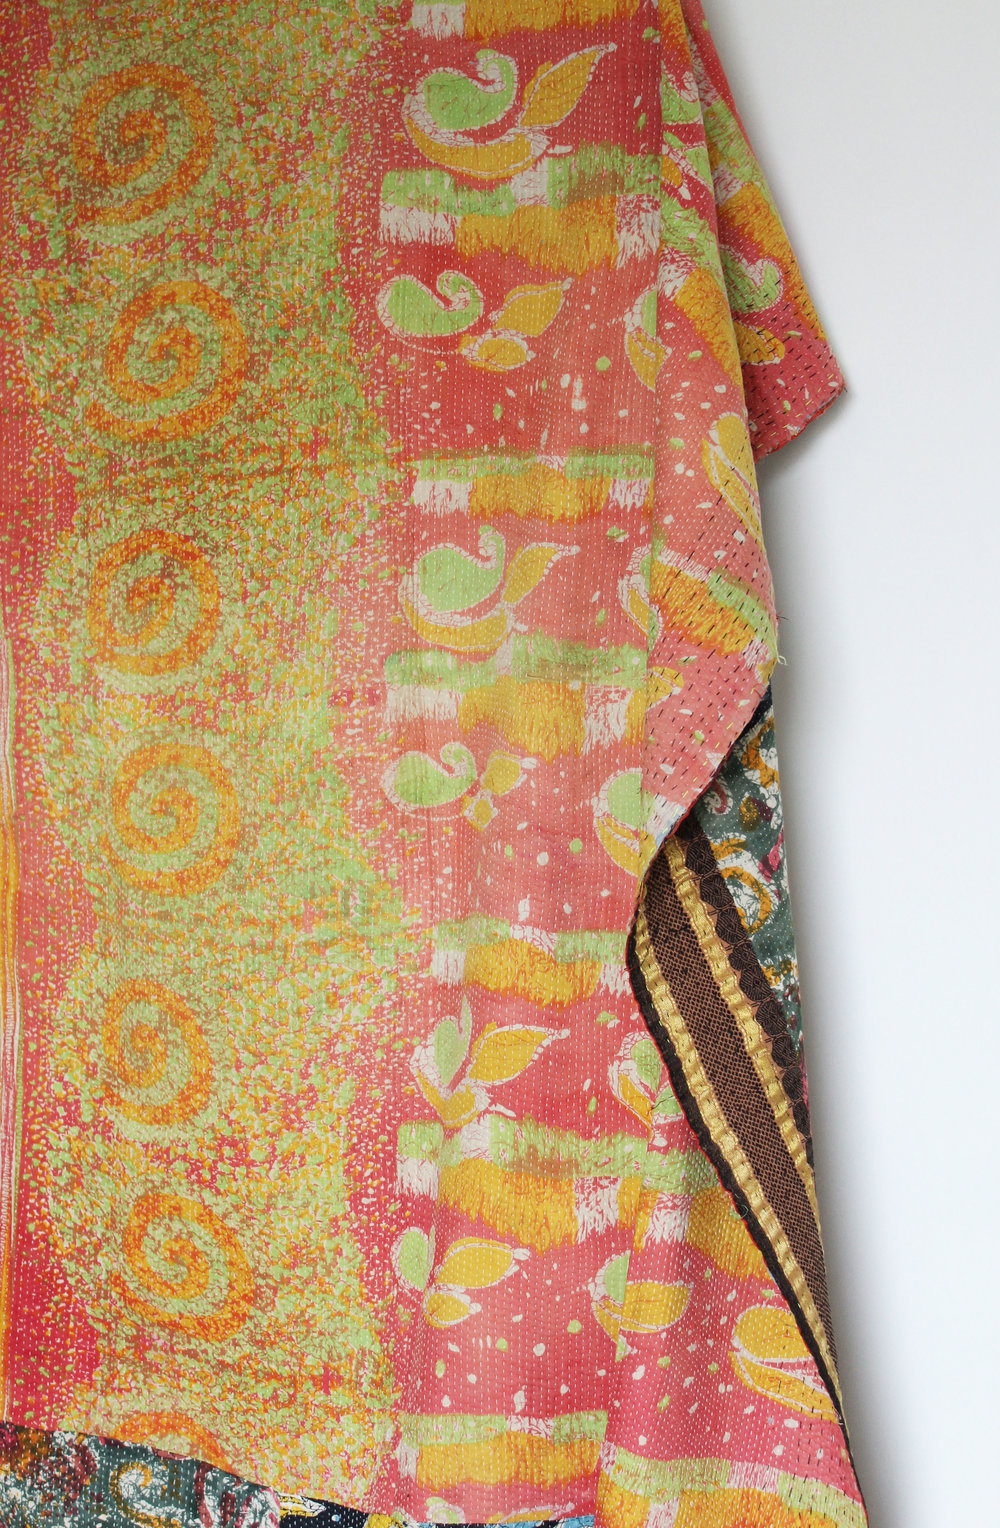 'Kelly' - Kantha Quilt   - vintage kantha quilt from India  - different pattern on the reverse side  - Dimensions: 119x204 cm  575 RMB